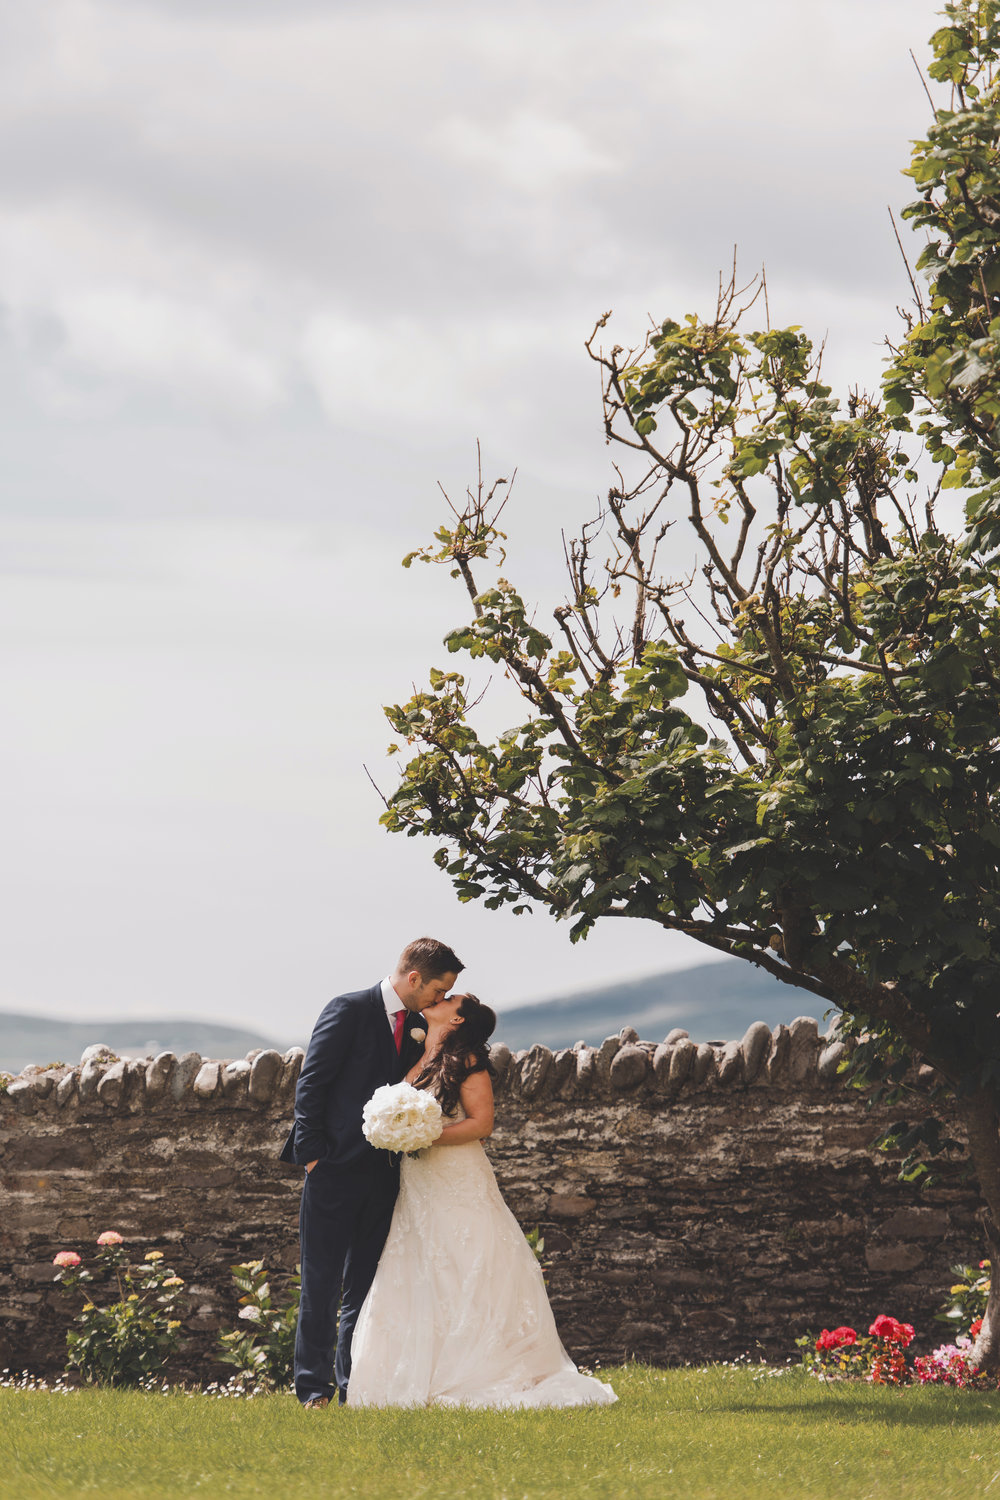 Wedding-photographers-ireland-084.jpg